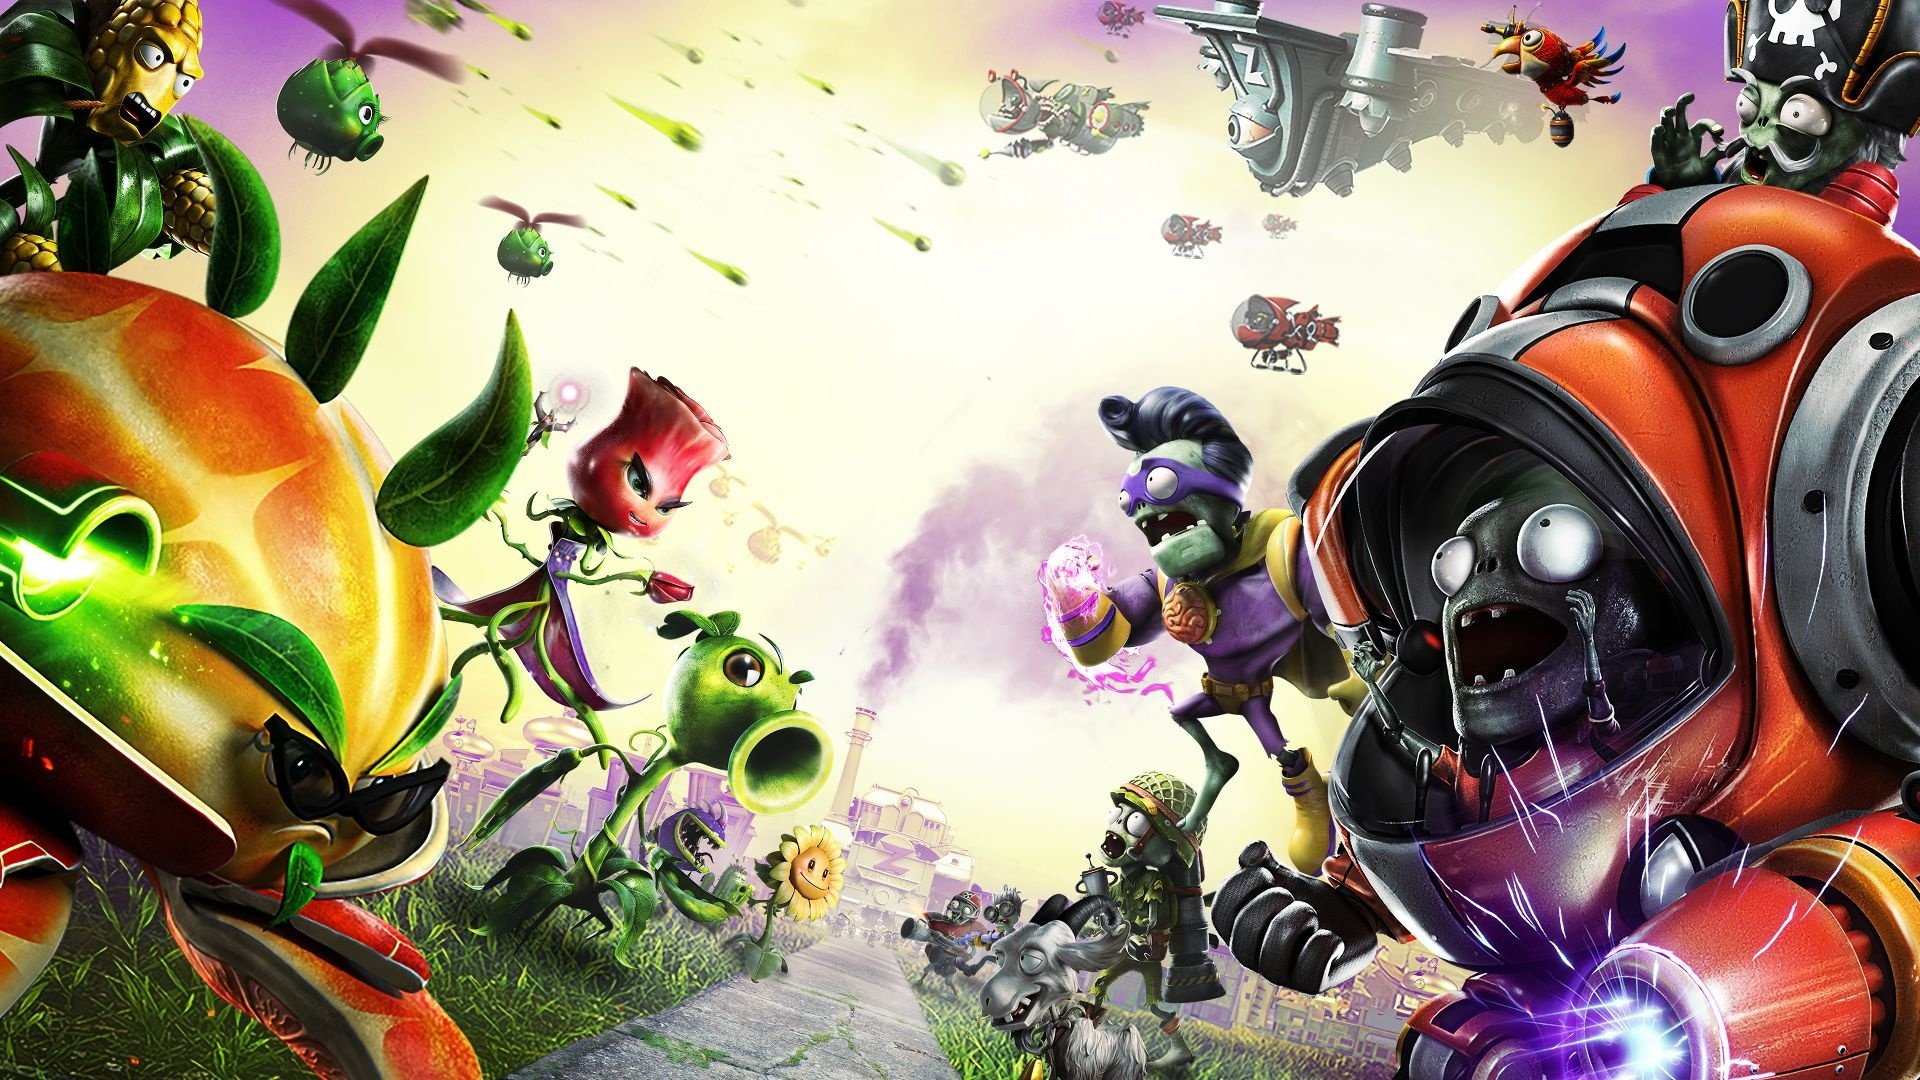 Rumour first plants vs zombies garden warfare 3 screens - Plants vs zombies garden warfare 2 review ...